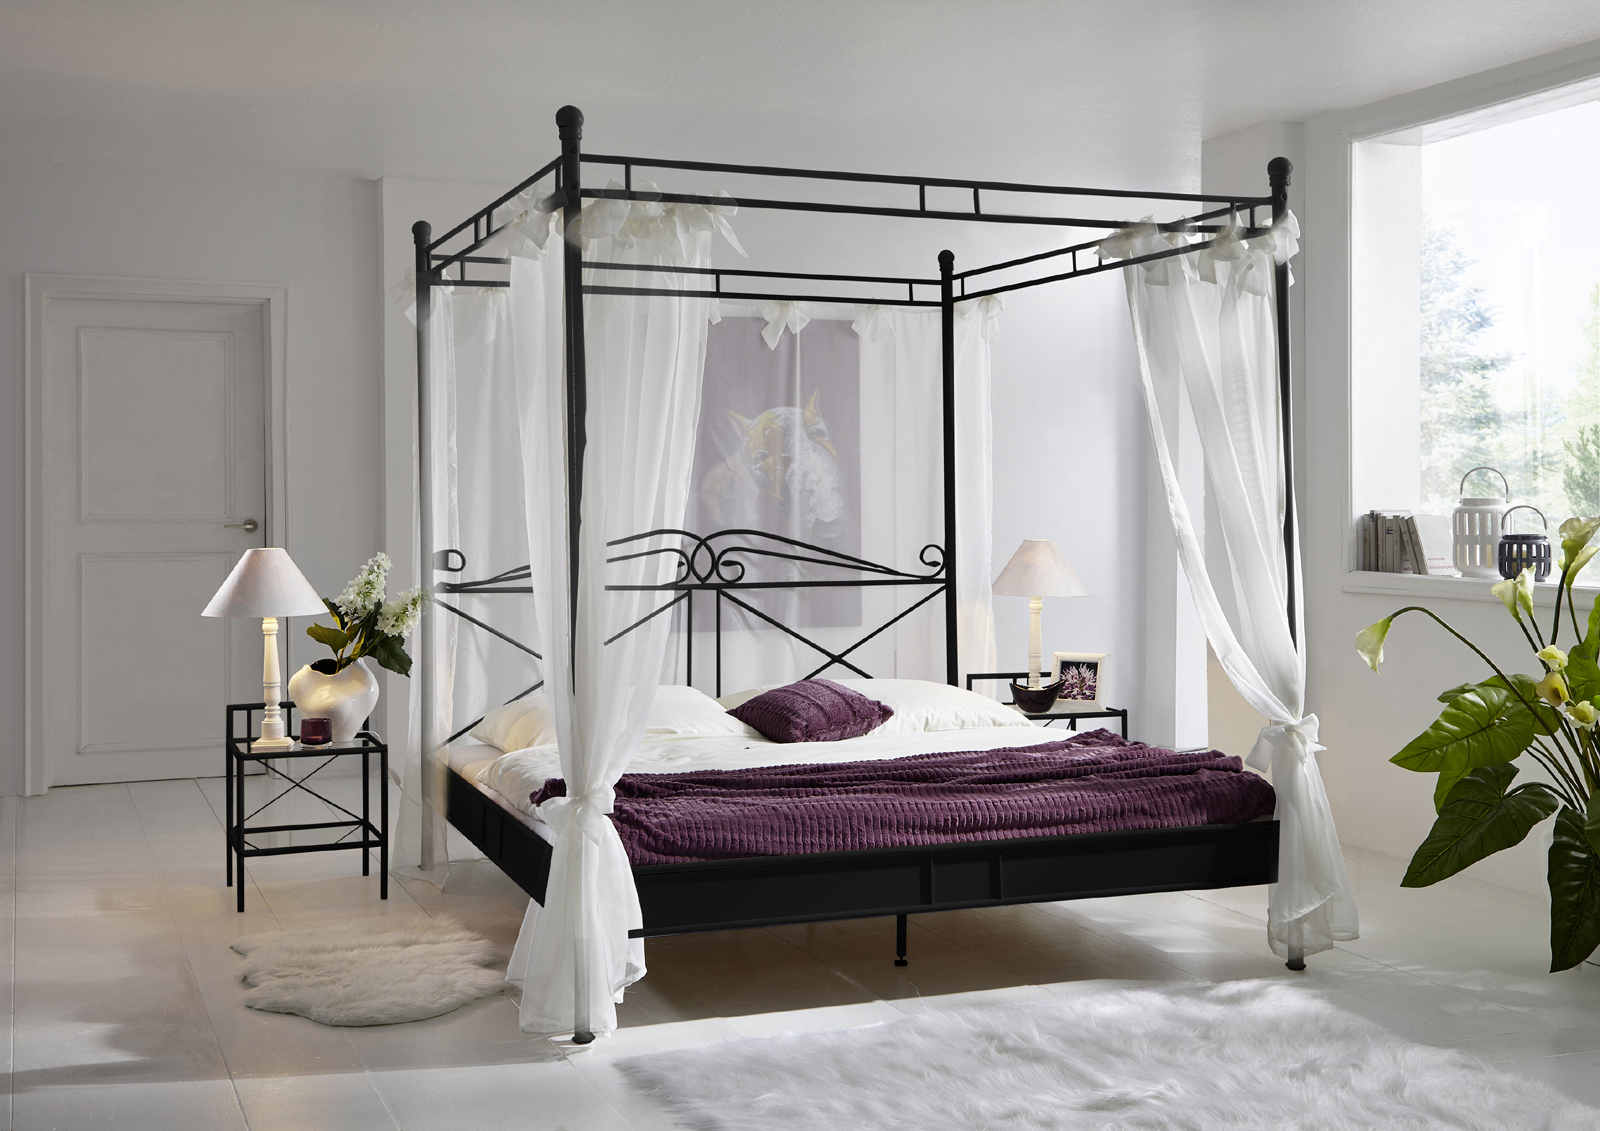 sam design himmelbett 140 cm schwarz venezia. Black Bedroom Furniture Sets. Home Design Ideas